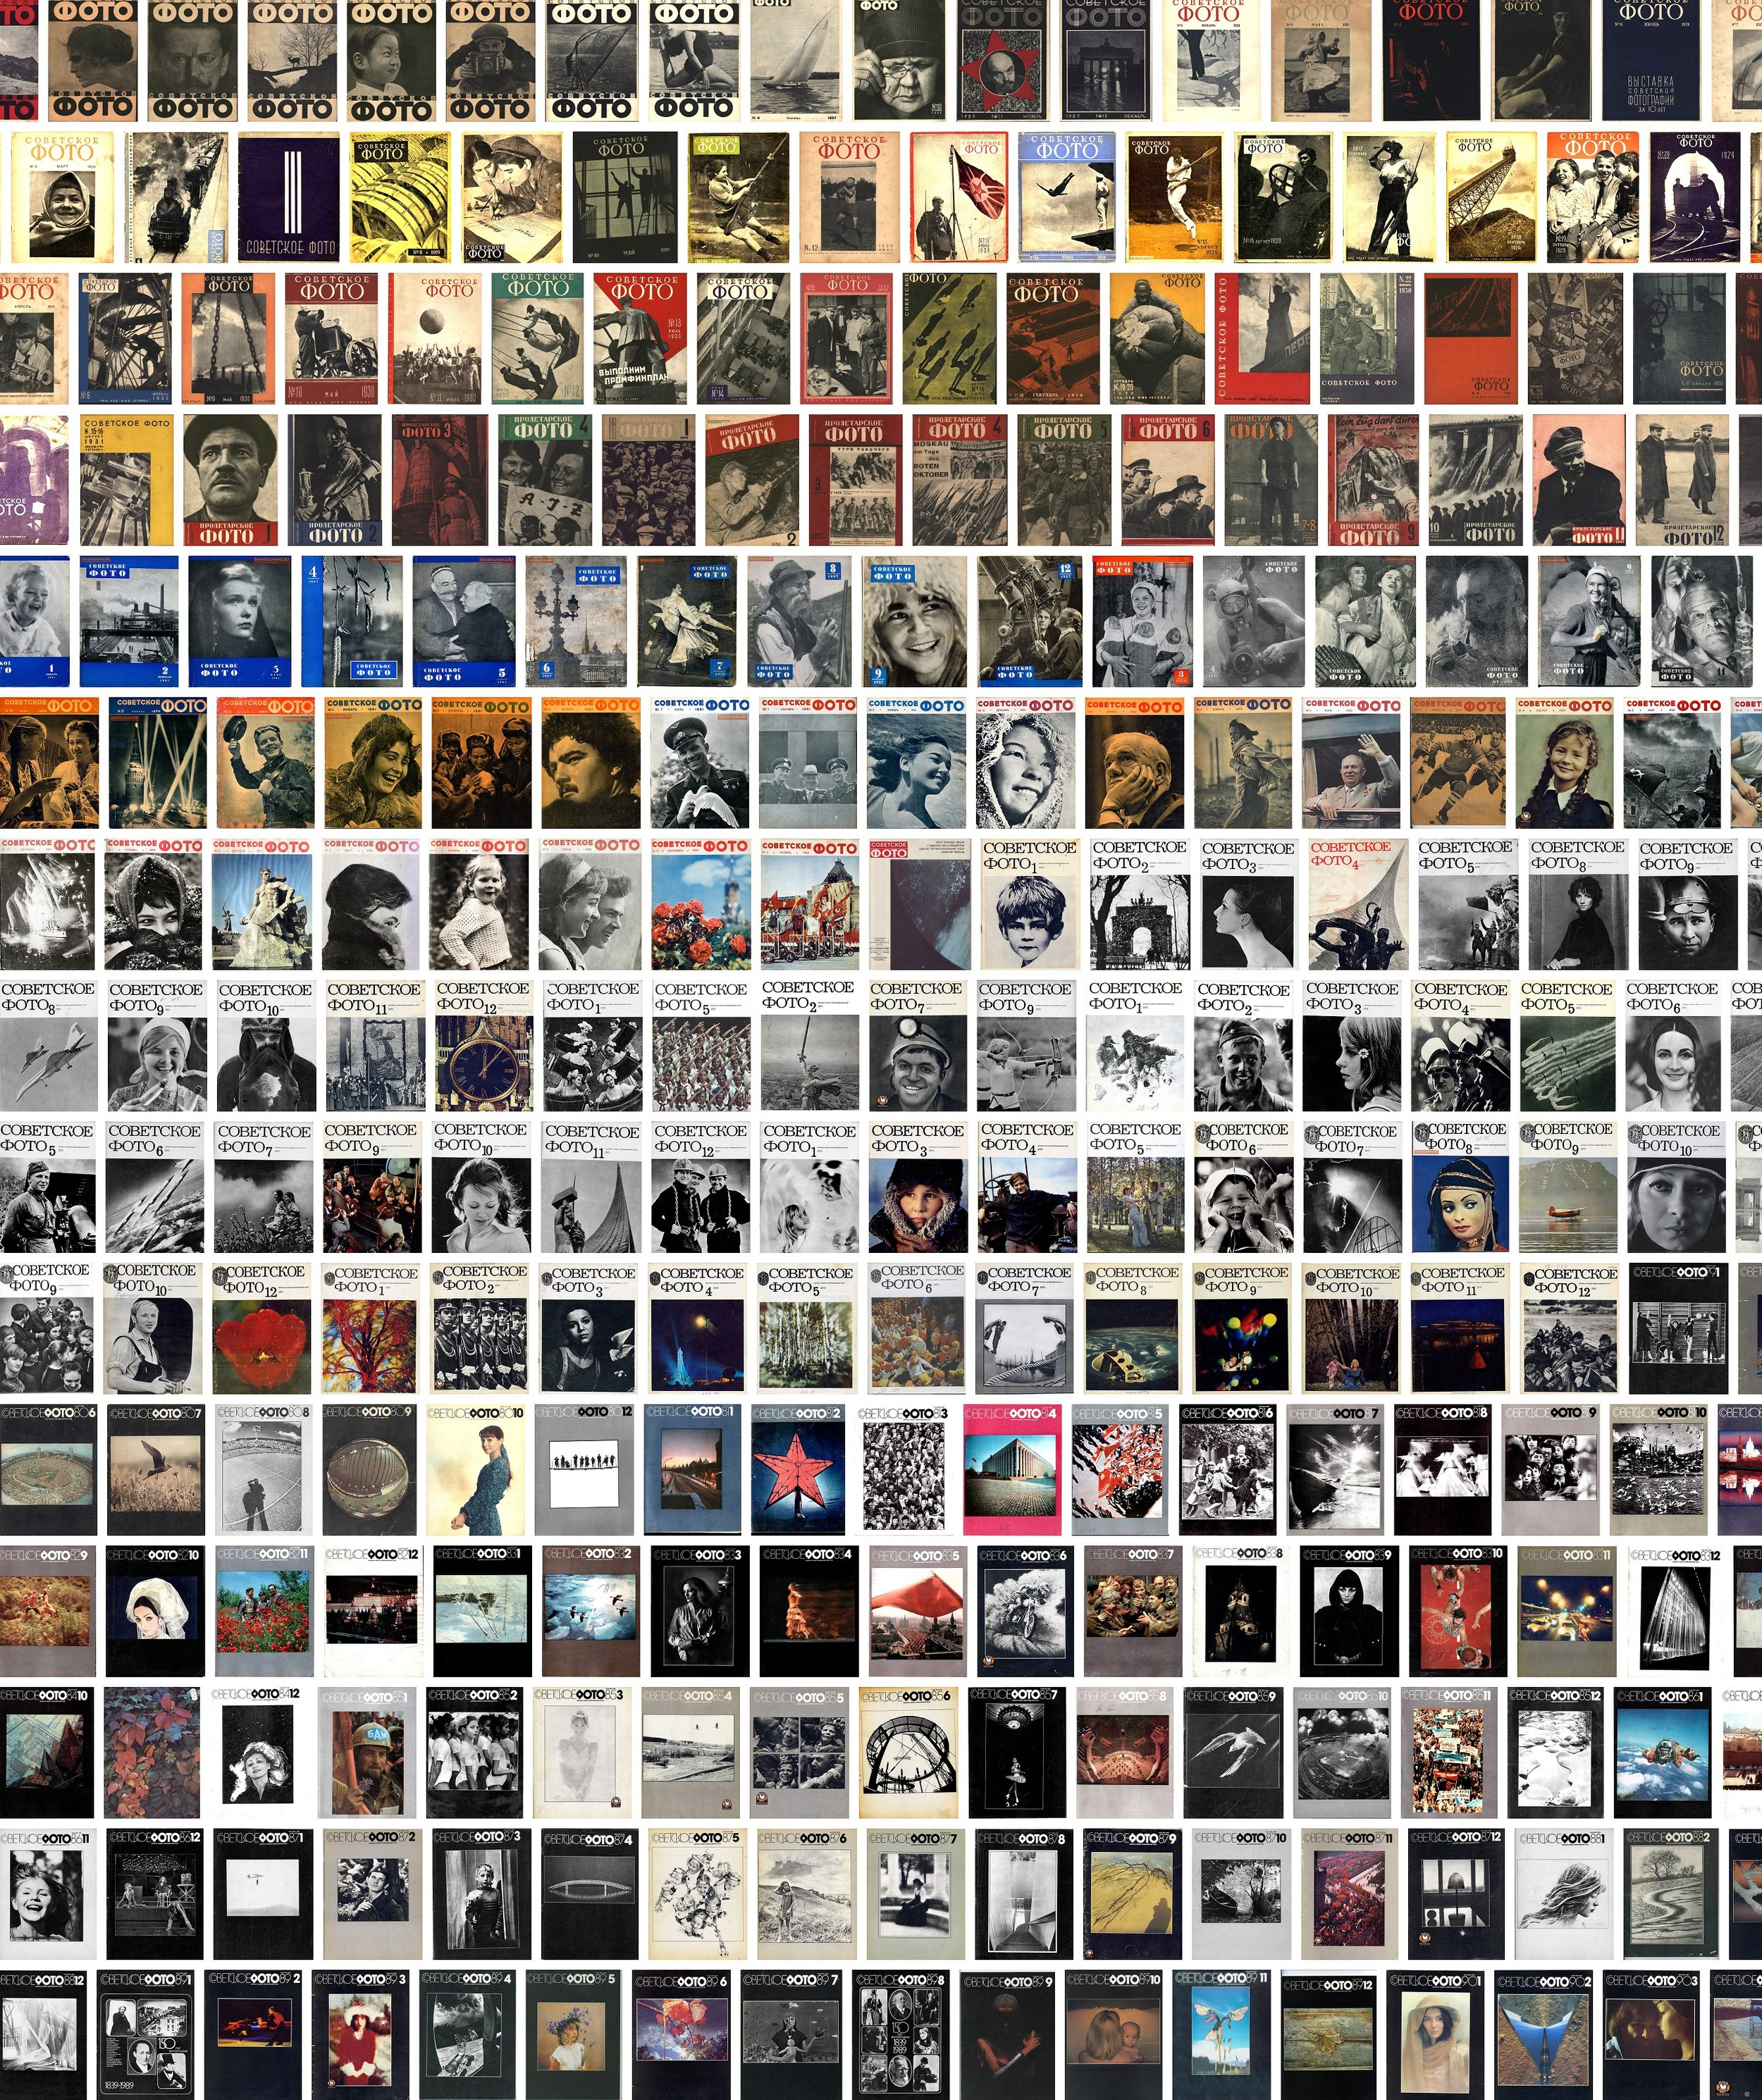 Montage of all available  Sovetskoe Foto  covers, published between 1926 and 1991 (detail). Visualization by Alise Tifentale, image editing by Lev Manovich. See full-size image on the  Cultural Analytics Lab website .